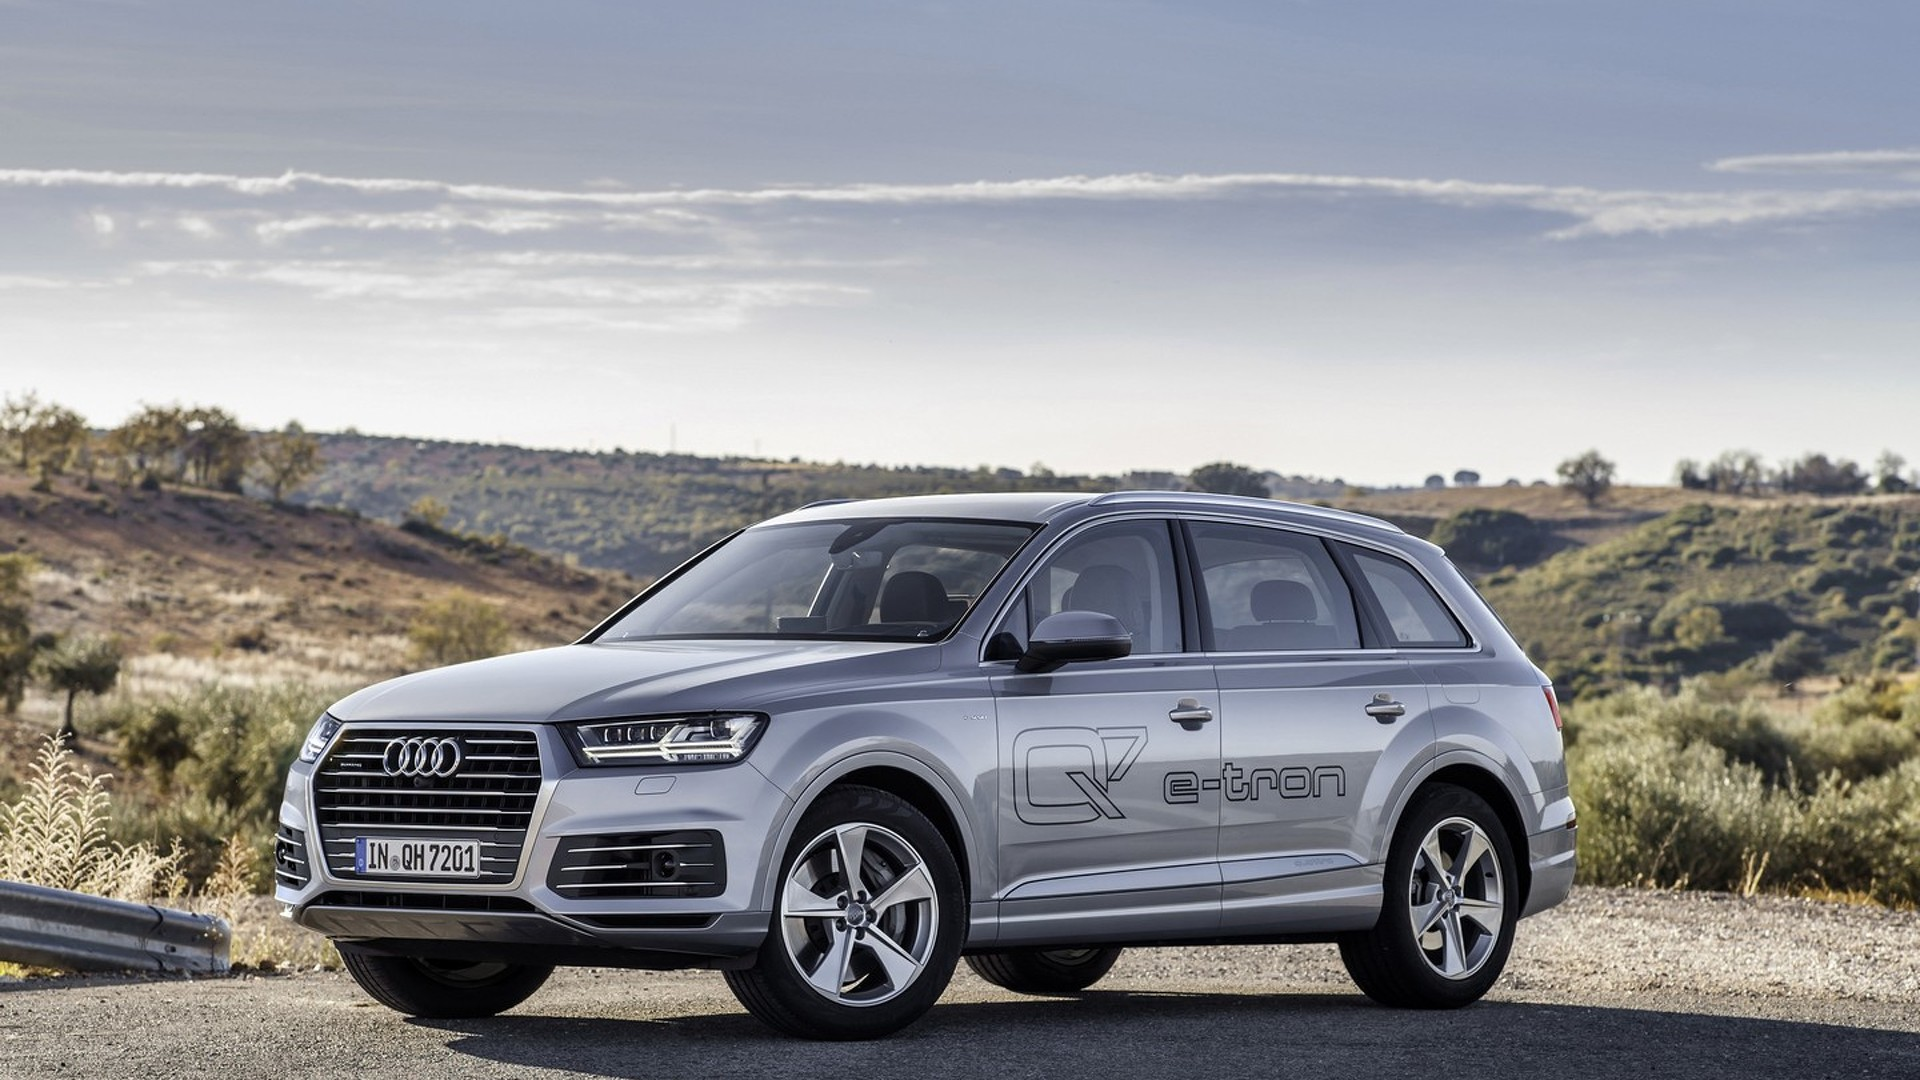 Audi Q7 E Tron Usa Release Date >> Audi Q7 E Tron 3 0 Tdi Quattro Priced From 80 500 New Images Released